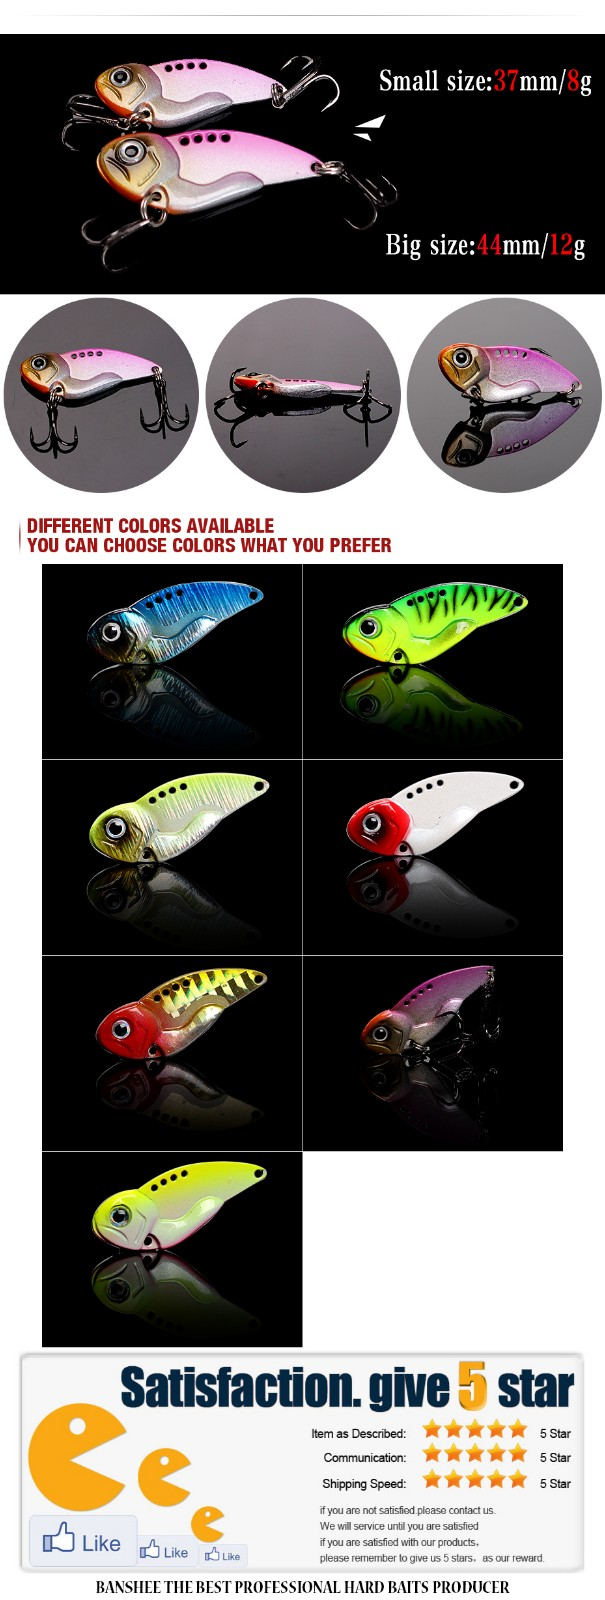 XIN-V -Oem Swimbait Price List | Xin-v Fishing Lures